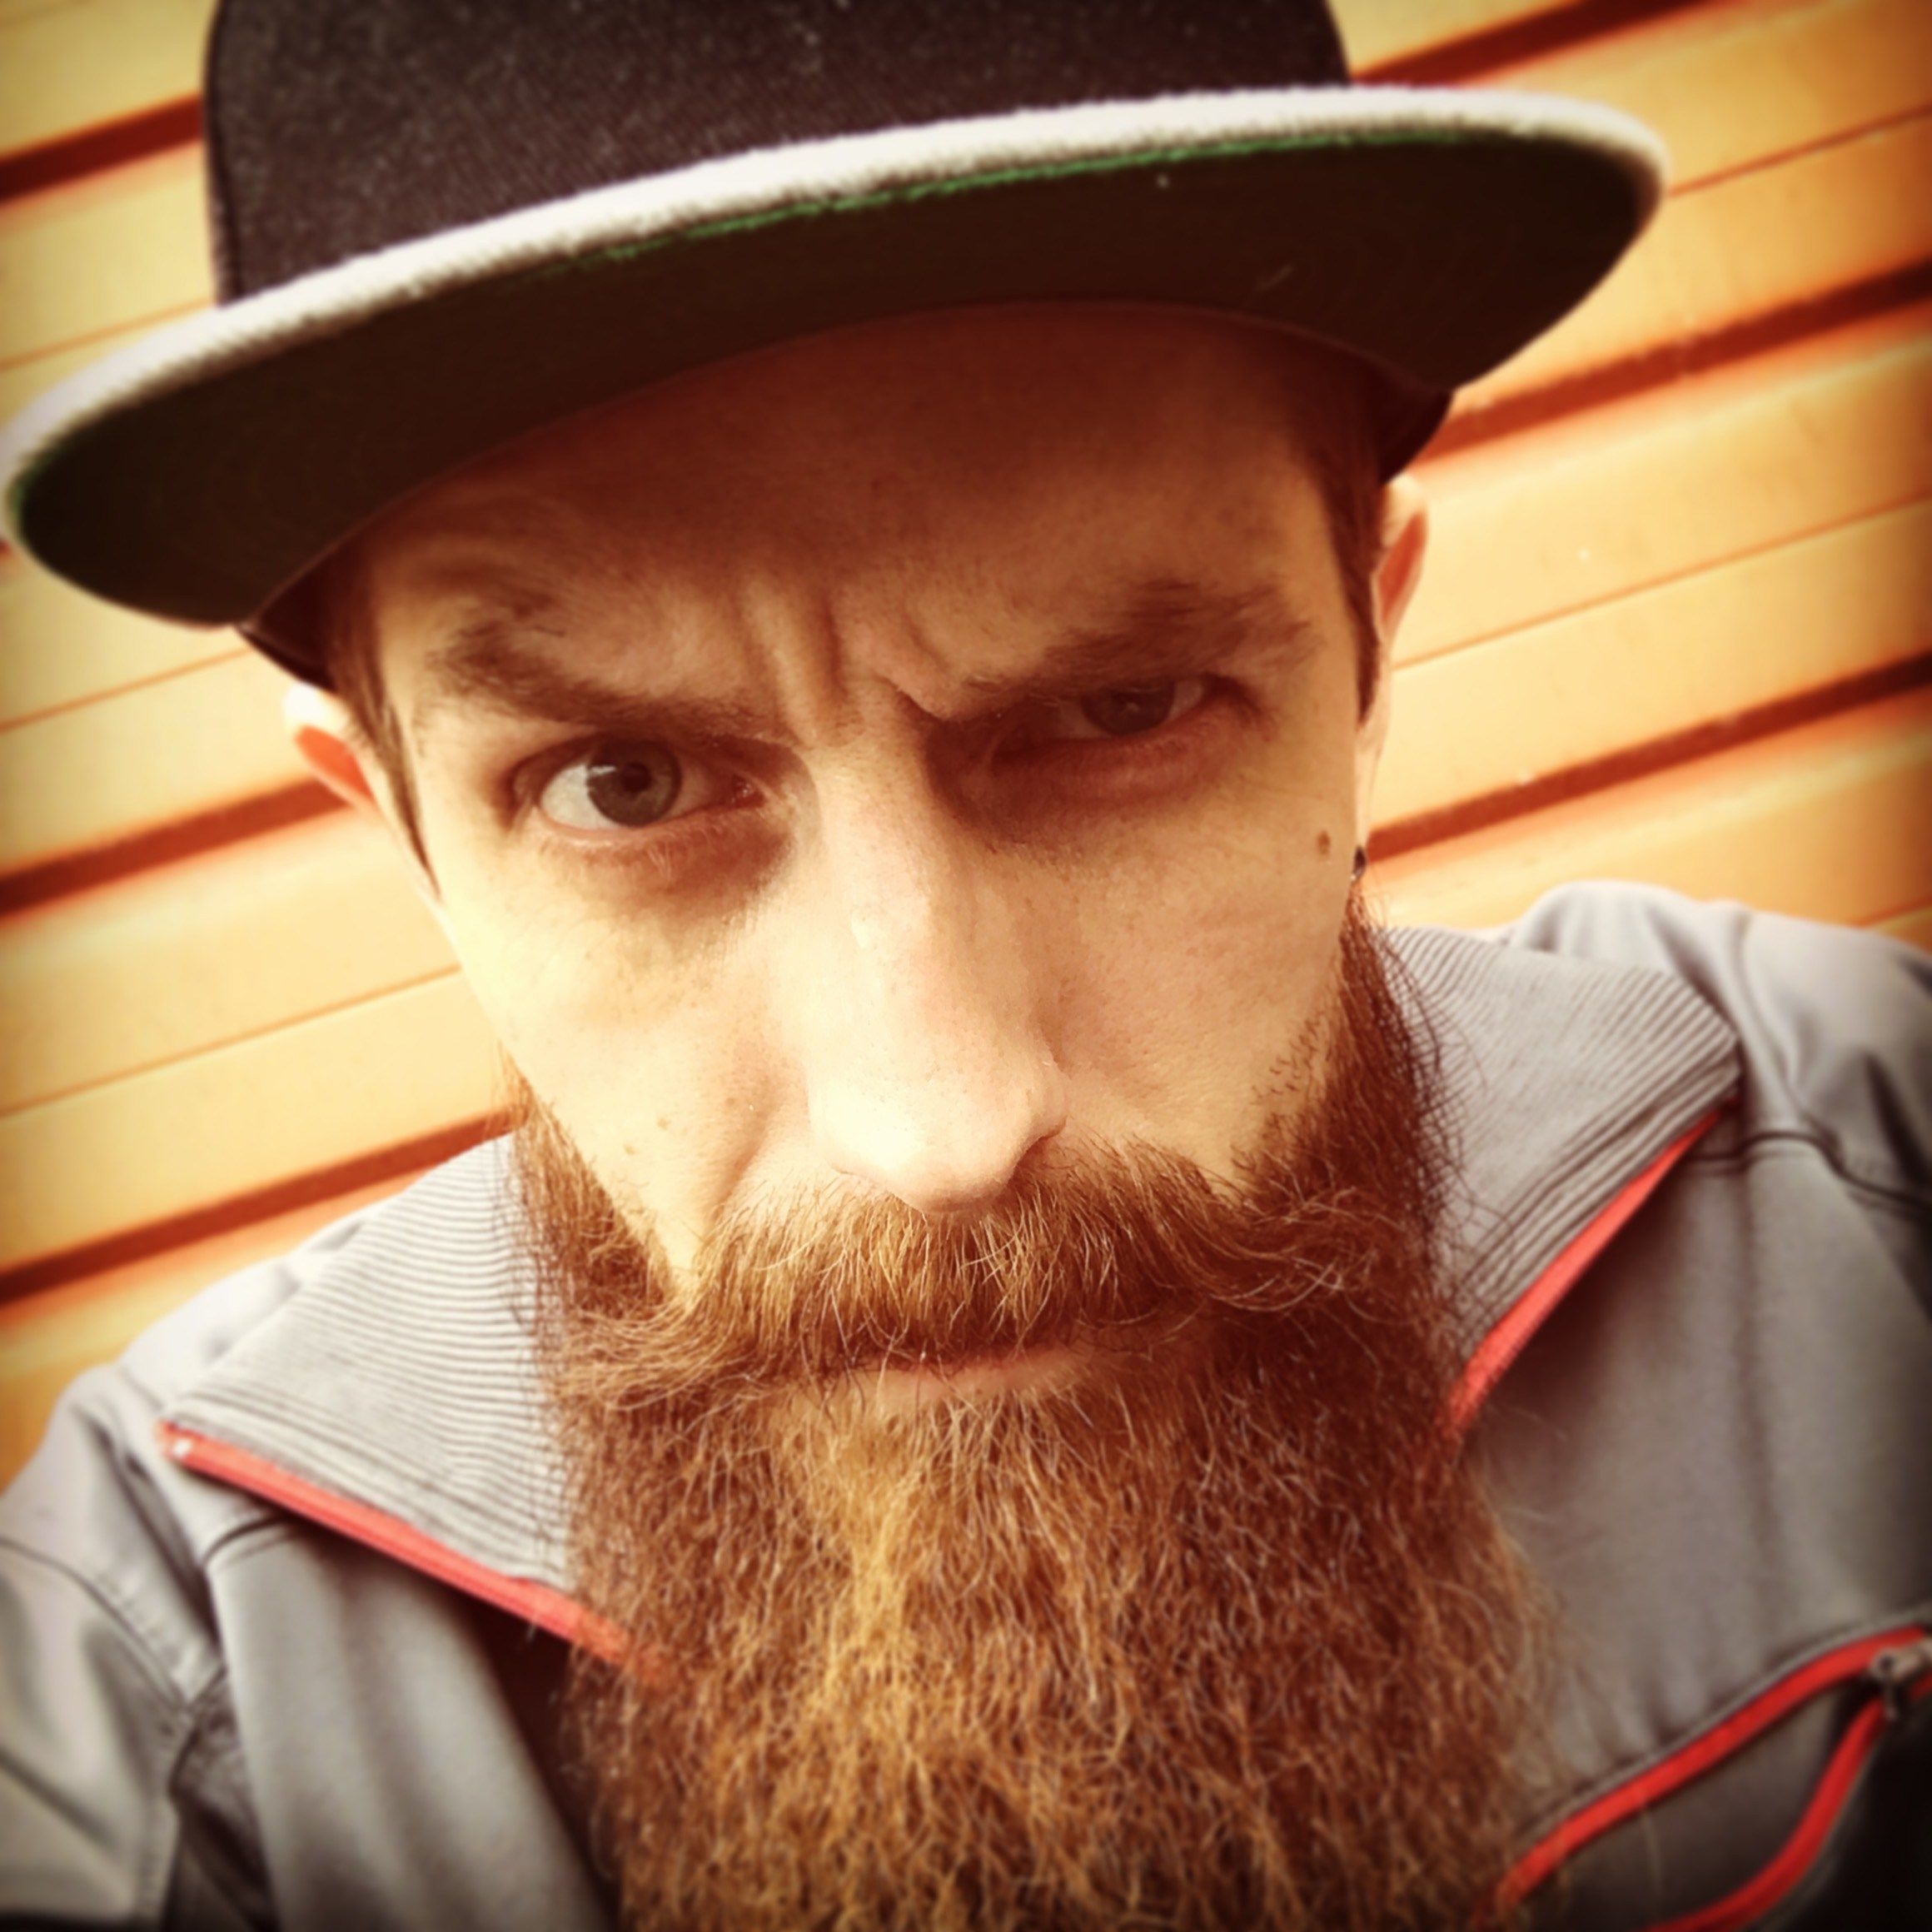 Visit Ratemybeard.se and check out @Mr__Bang - http://ratemybeard.se/mr__bang-3/ - support #heartbeard - Don't forget to vote, comment and please share this with your friends.